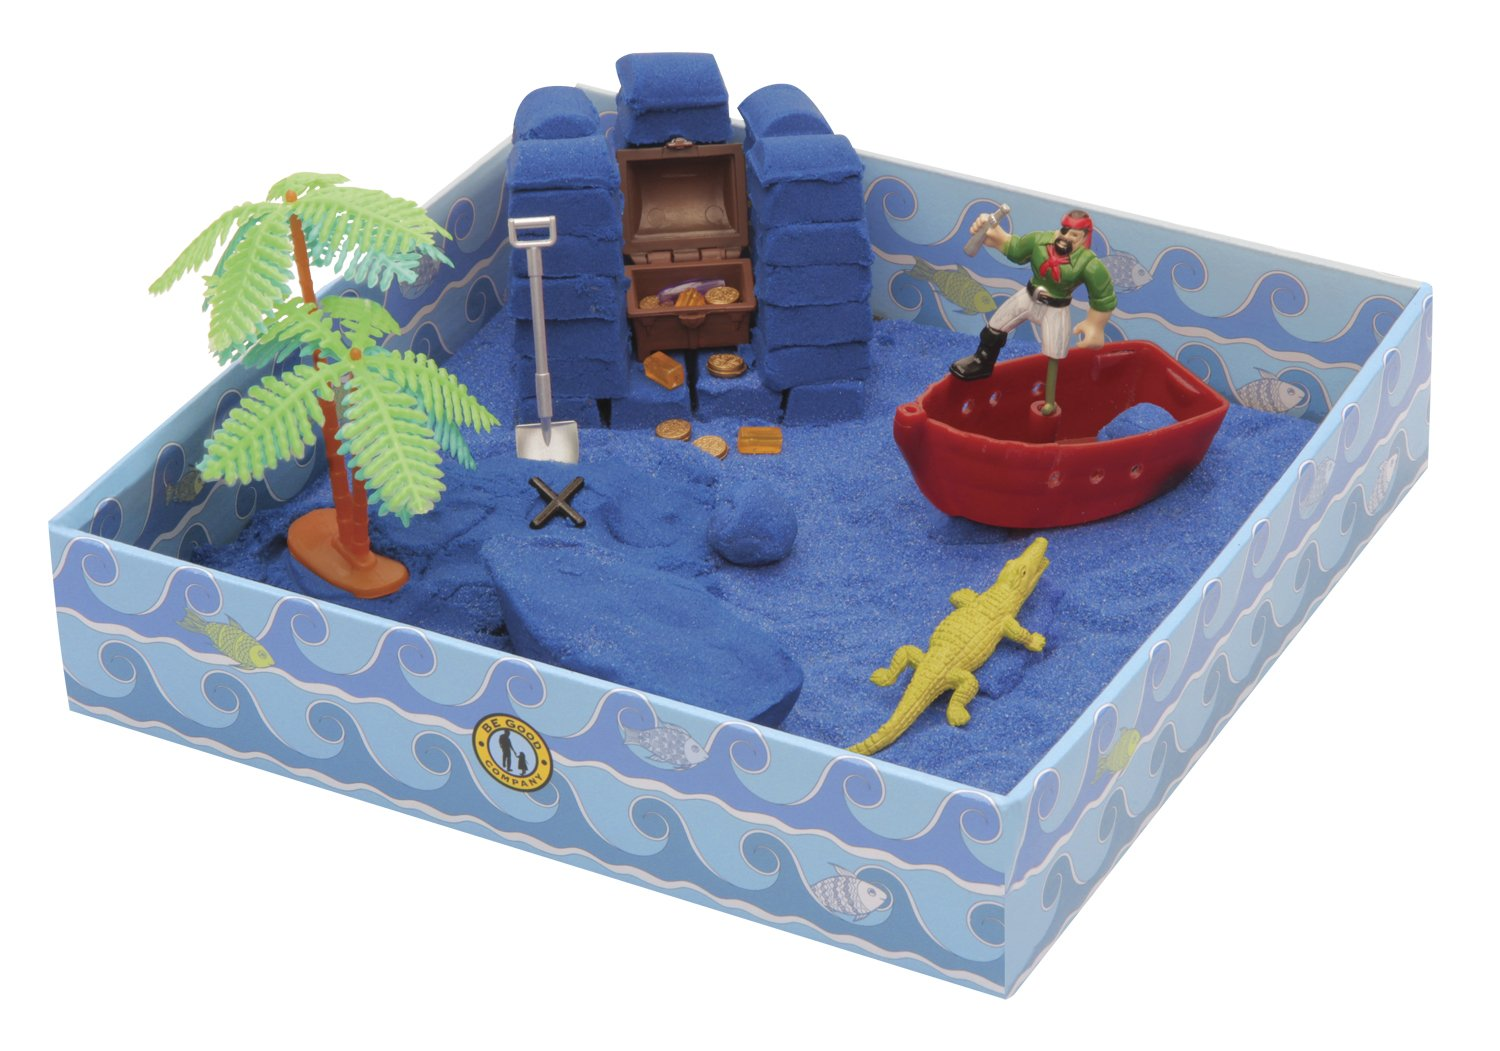 Be Good Company KwikSand Toy - Pirate's Plunder 42090